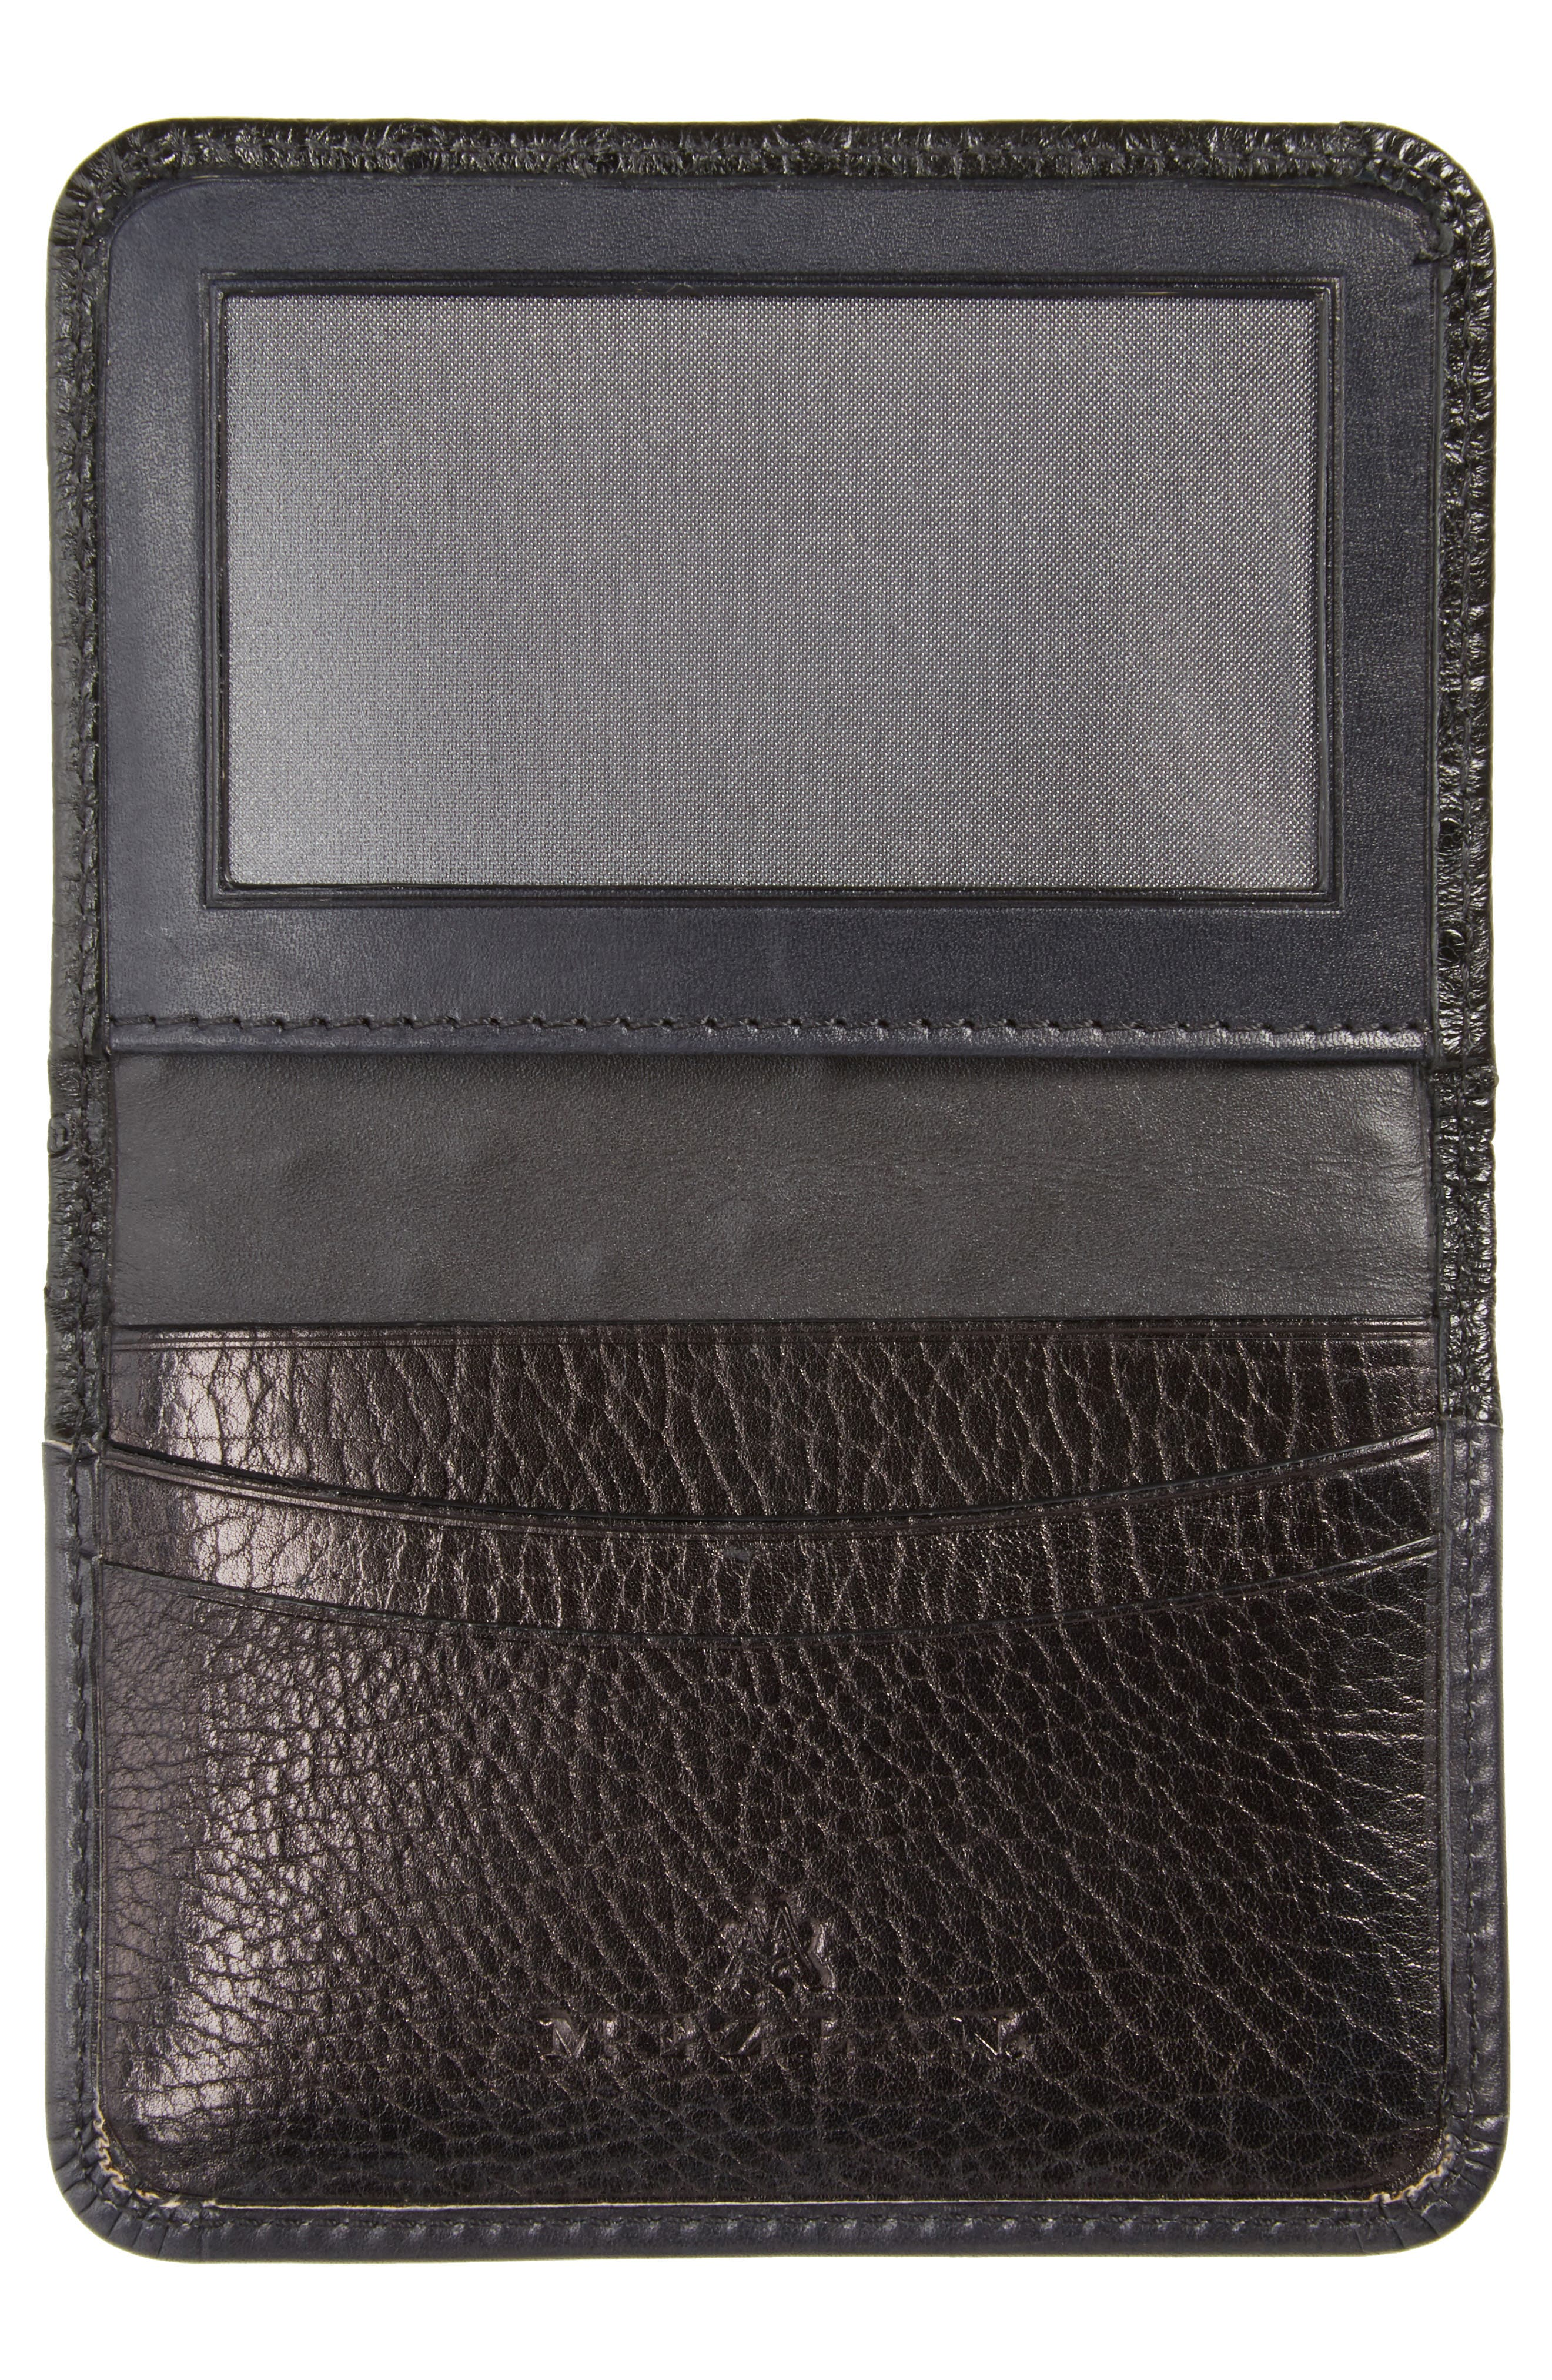 Ostrich Leather Card Case,                             Alternate thumbnail 2, color,                             001